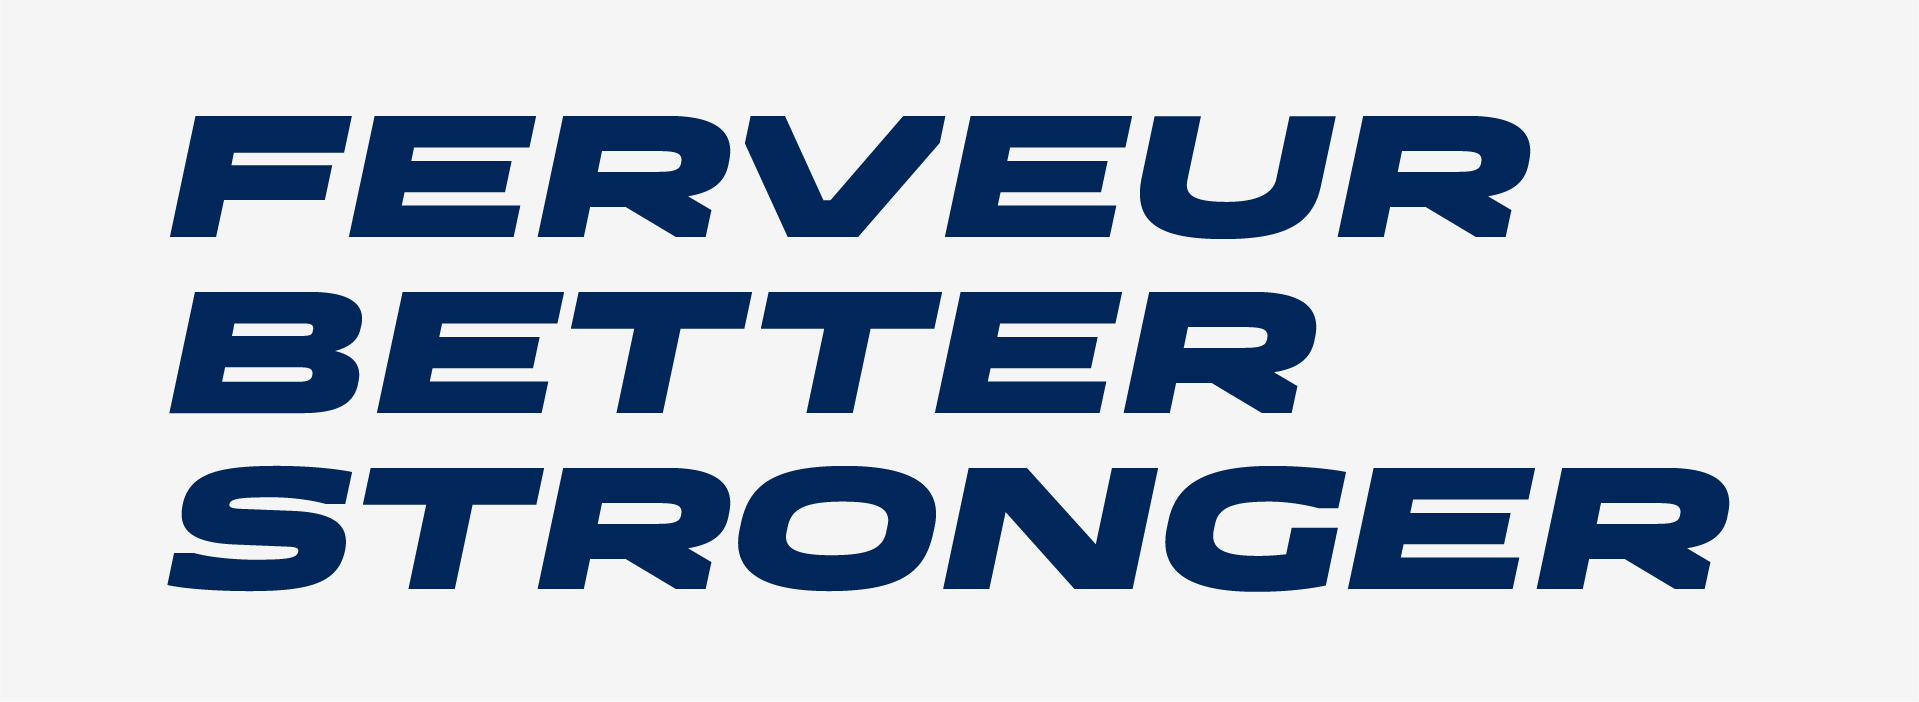 Ferveur better stronger